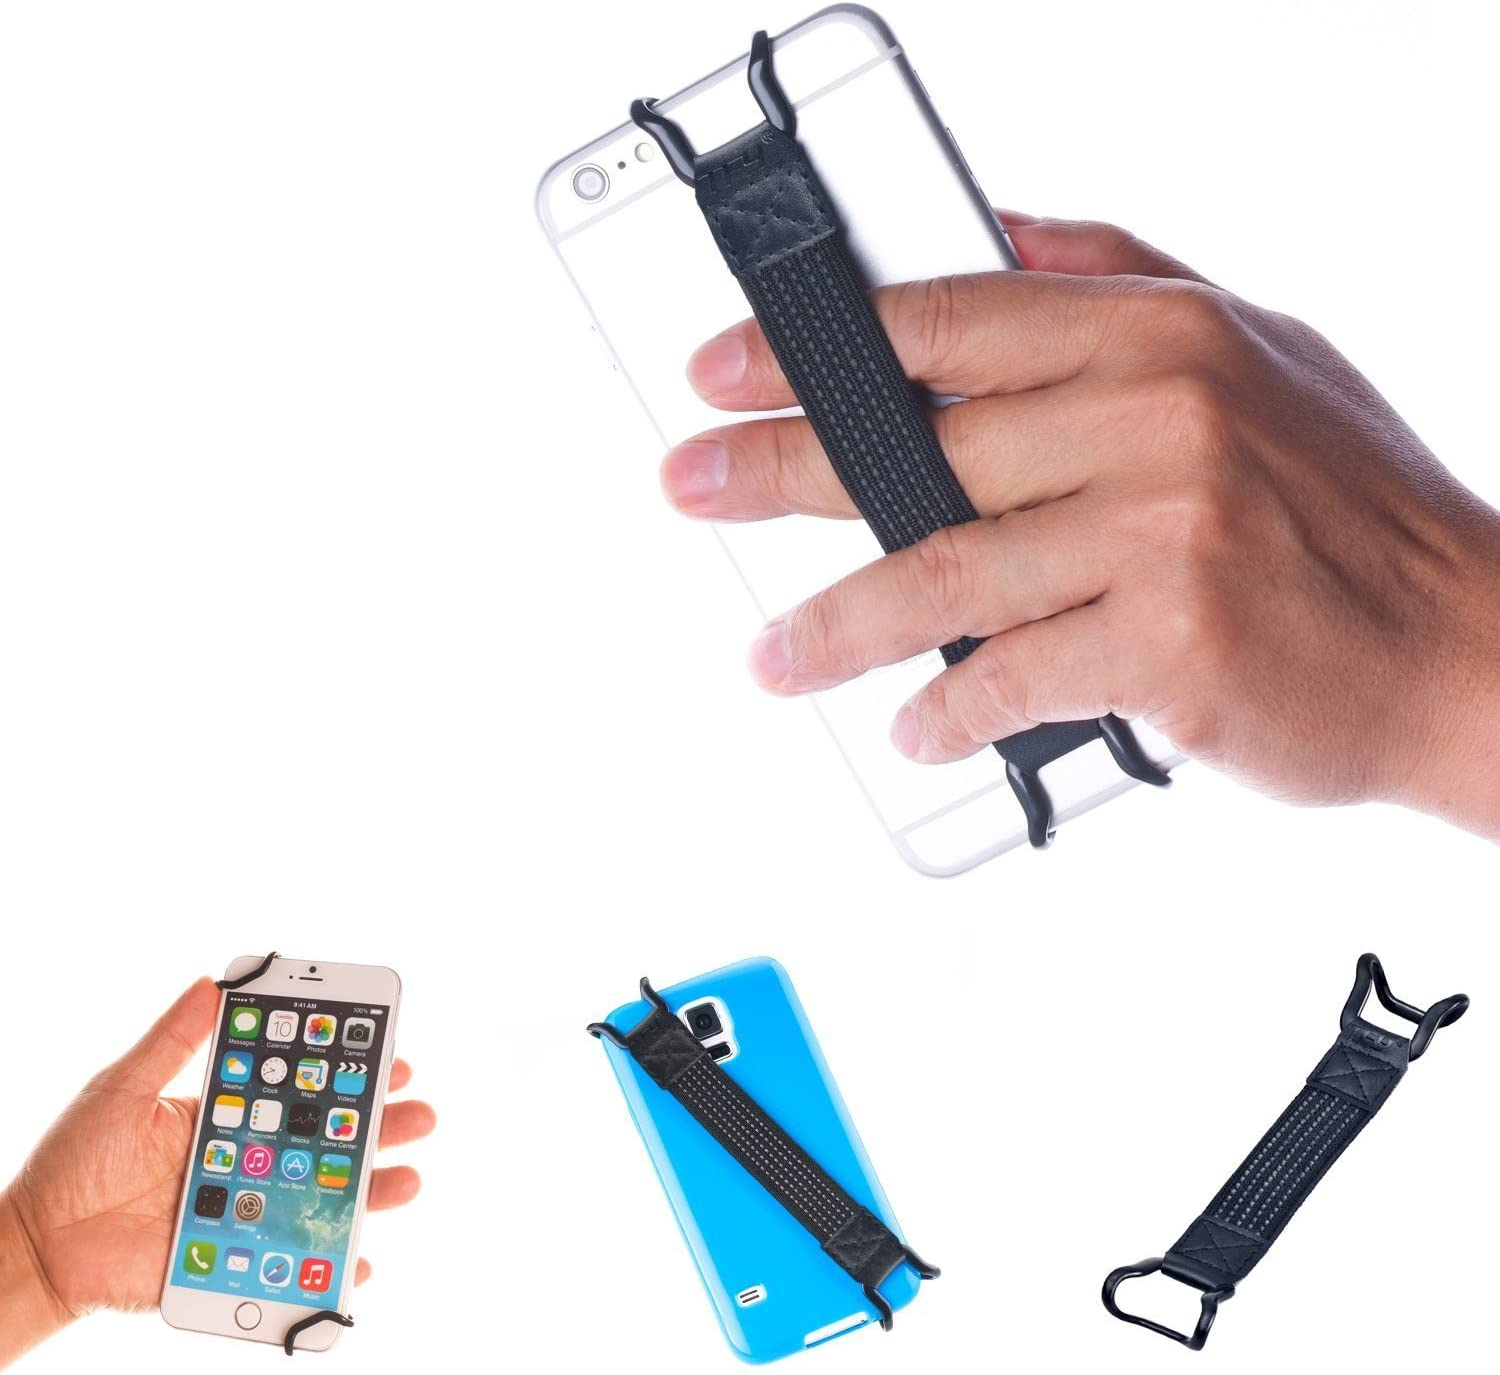 TFY Security Hand Strap Holder Compatible with iPhone 13 Pro Max /12 Pro / 11 / Xs / XR / X / 8 Plus / 7 - Galaxy S21 / S20 - Galaxy Note - Huawei Mate 20 30 40 Pro and More